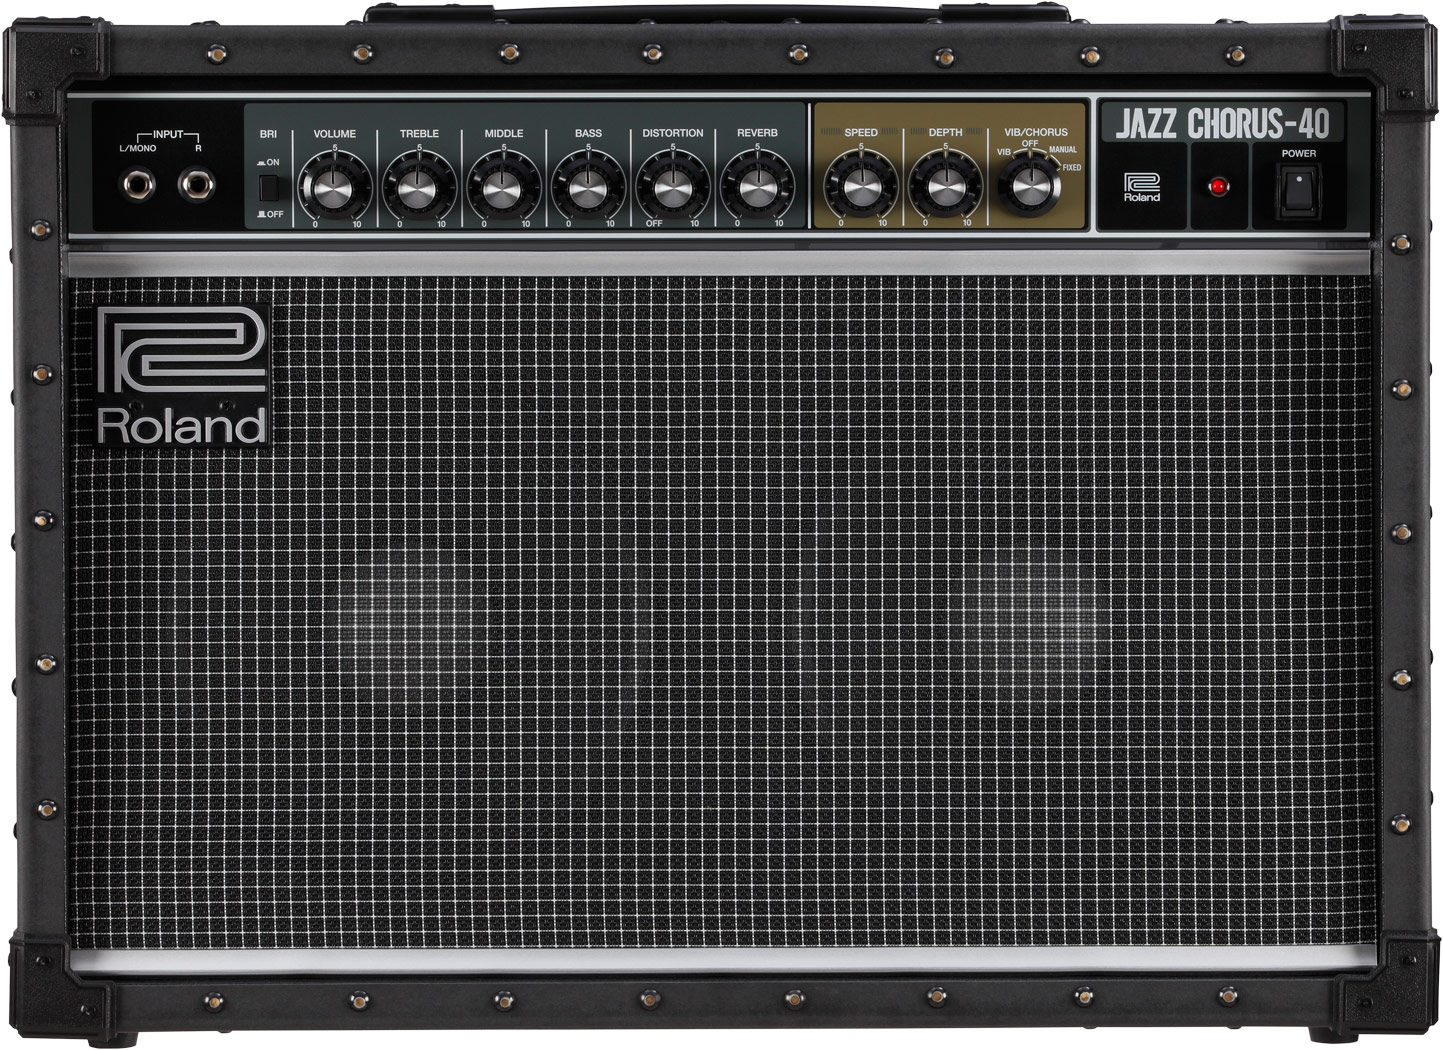 Roland Jc 40 Jazz Chorus Guitar Amplifier Headphone Amp Circuit